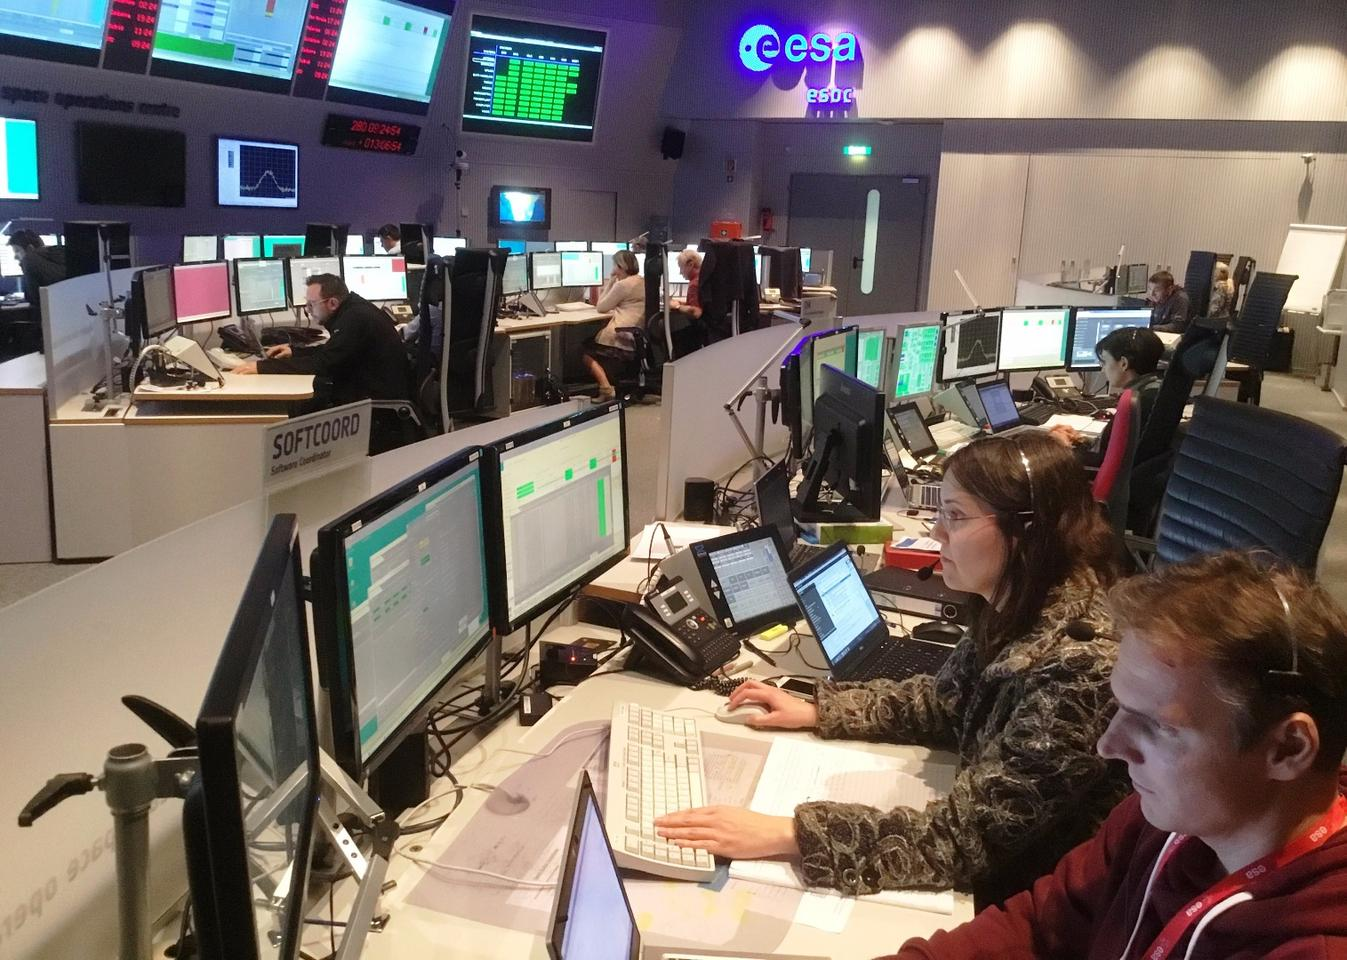 Mission control sent Schiaparelli its final landing instructions